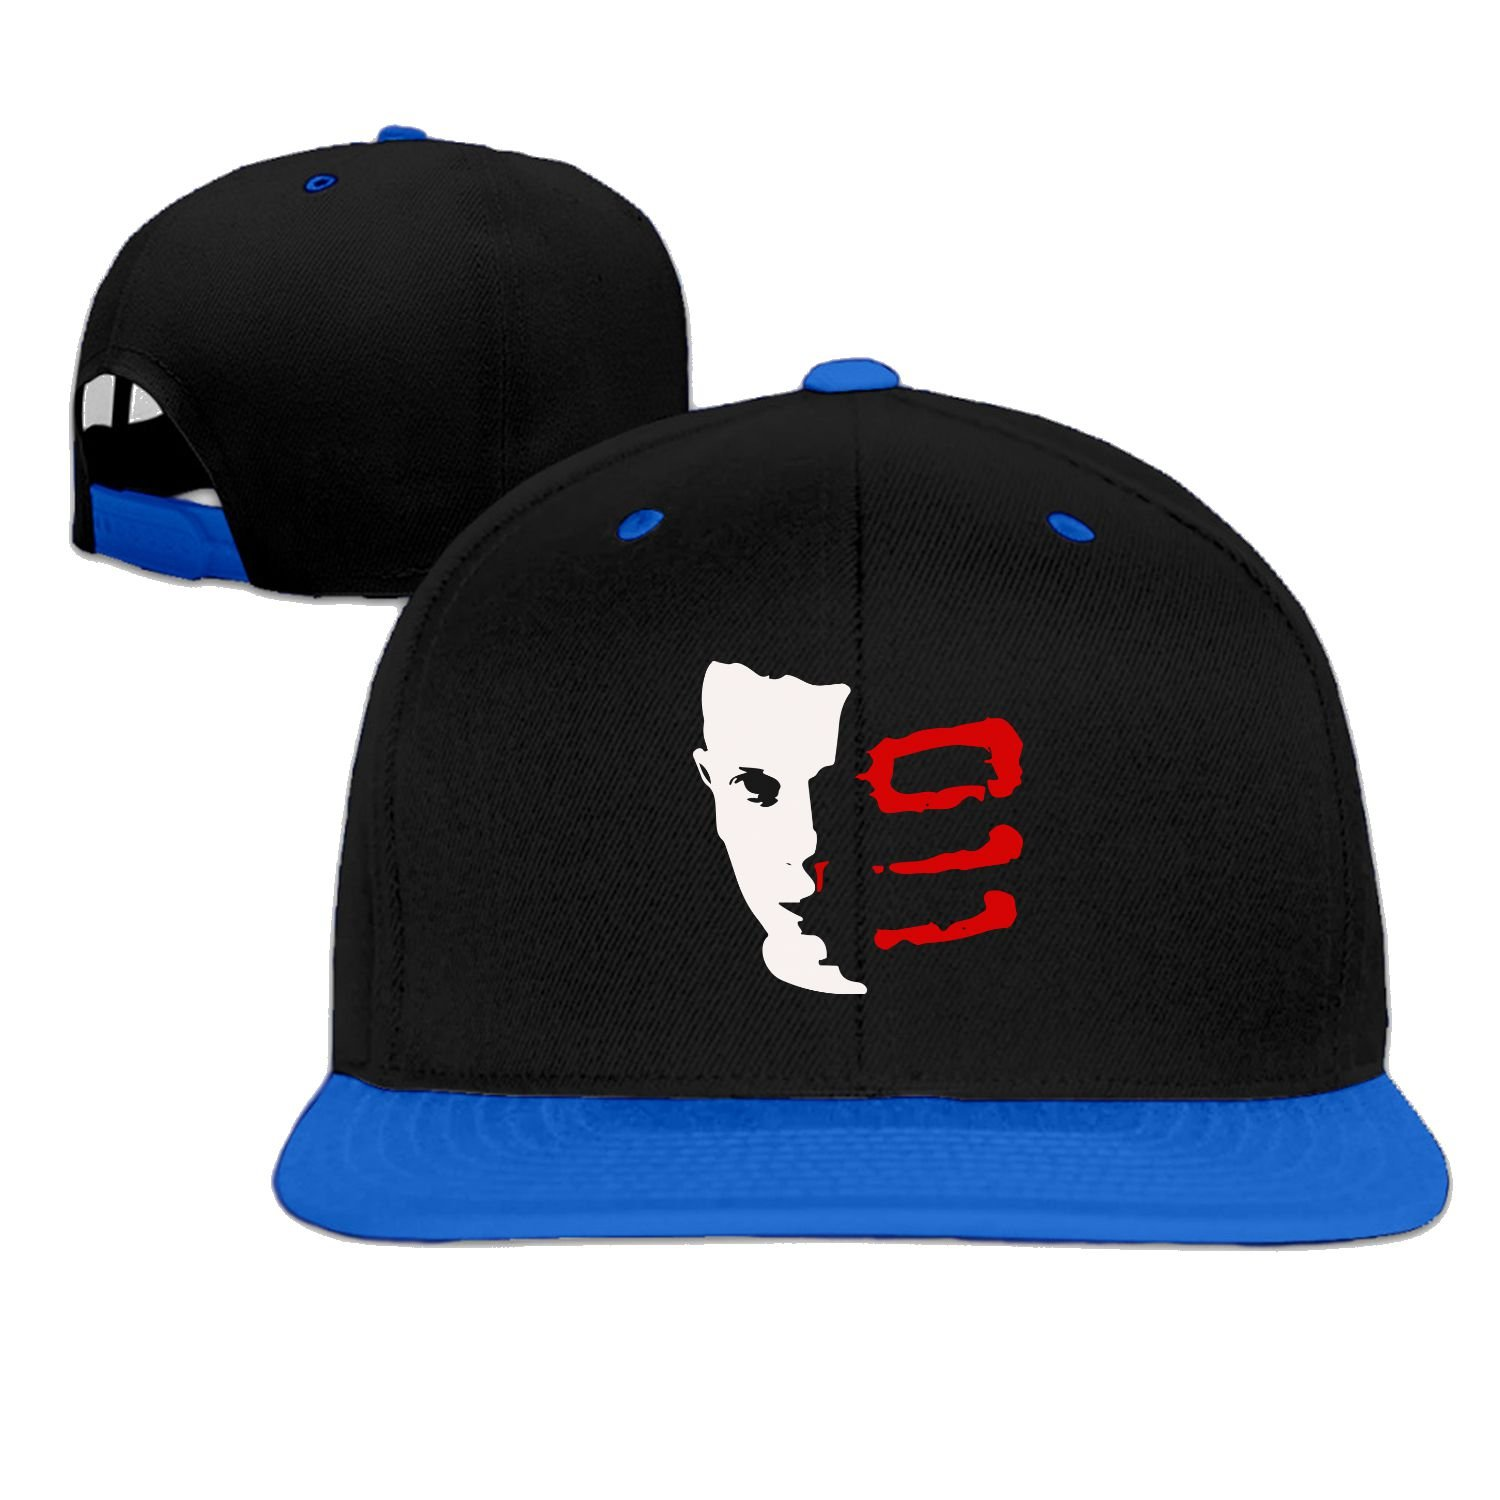 Amazon.com  Baseball cap hip hop hat Stranger Things EL 011 cap (5 colors)   Clothing ceb38df5c1f